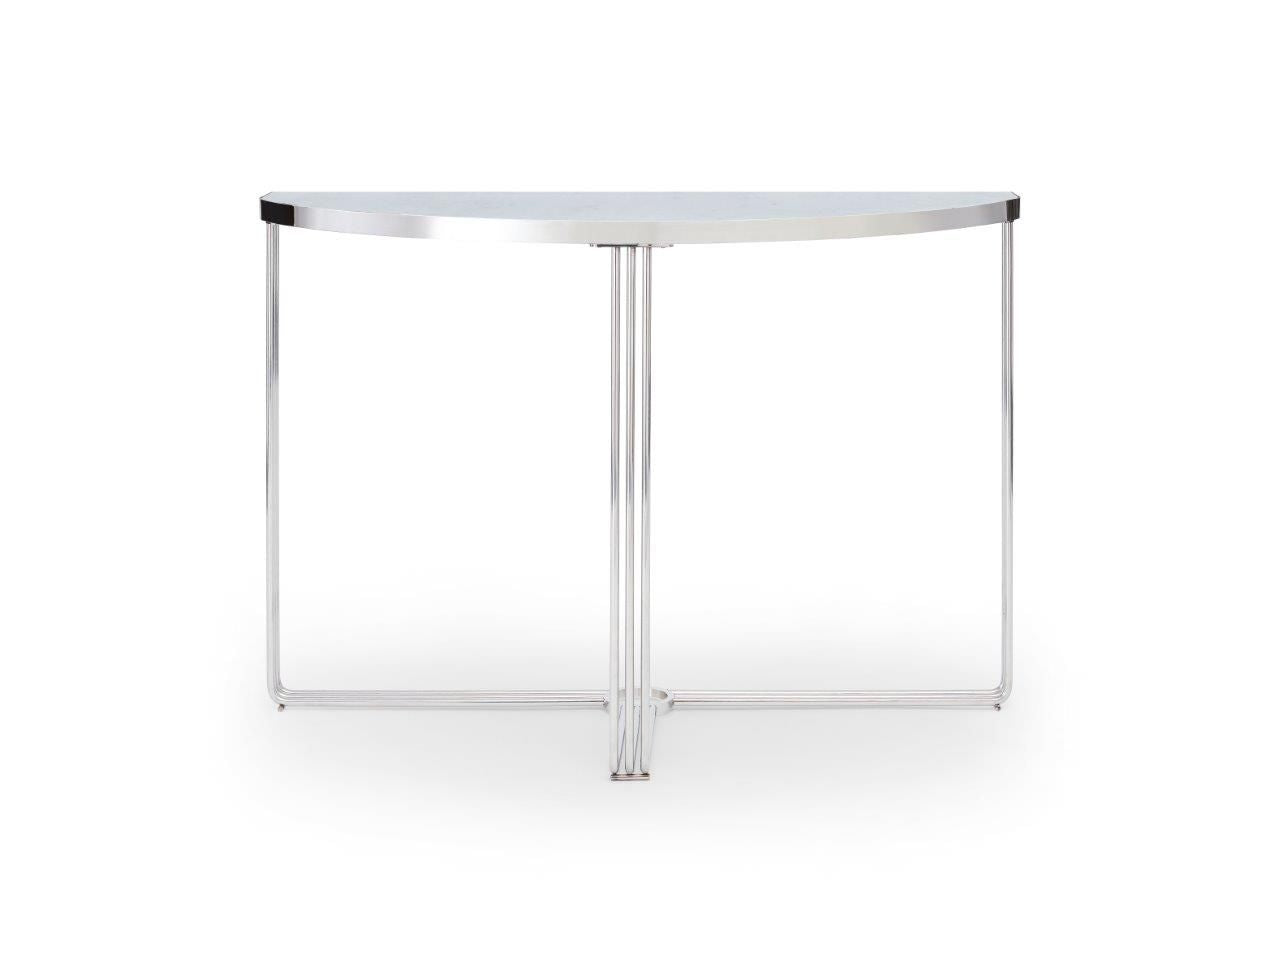 Gillmore Finn Collection Demi Lune Console Table with Polished Chrome Frame